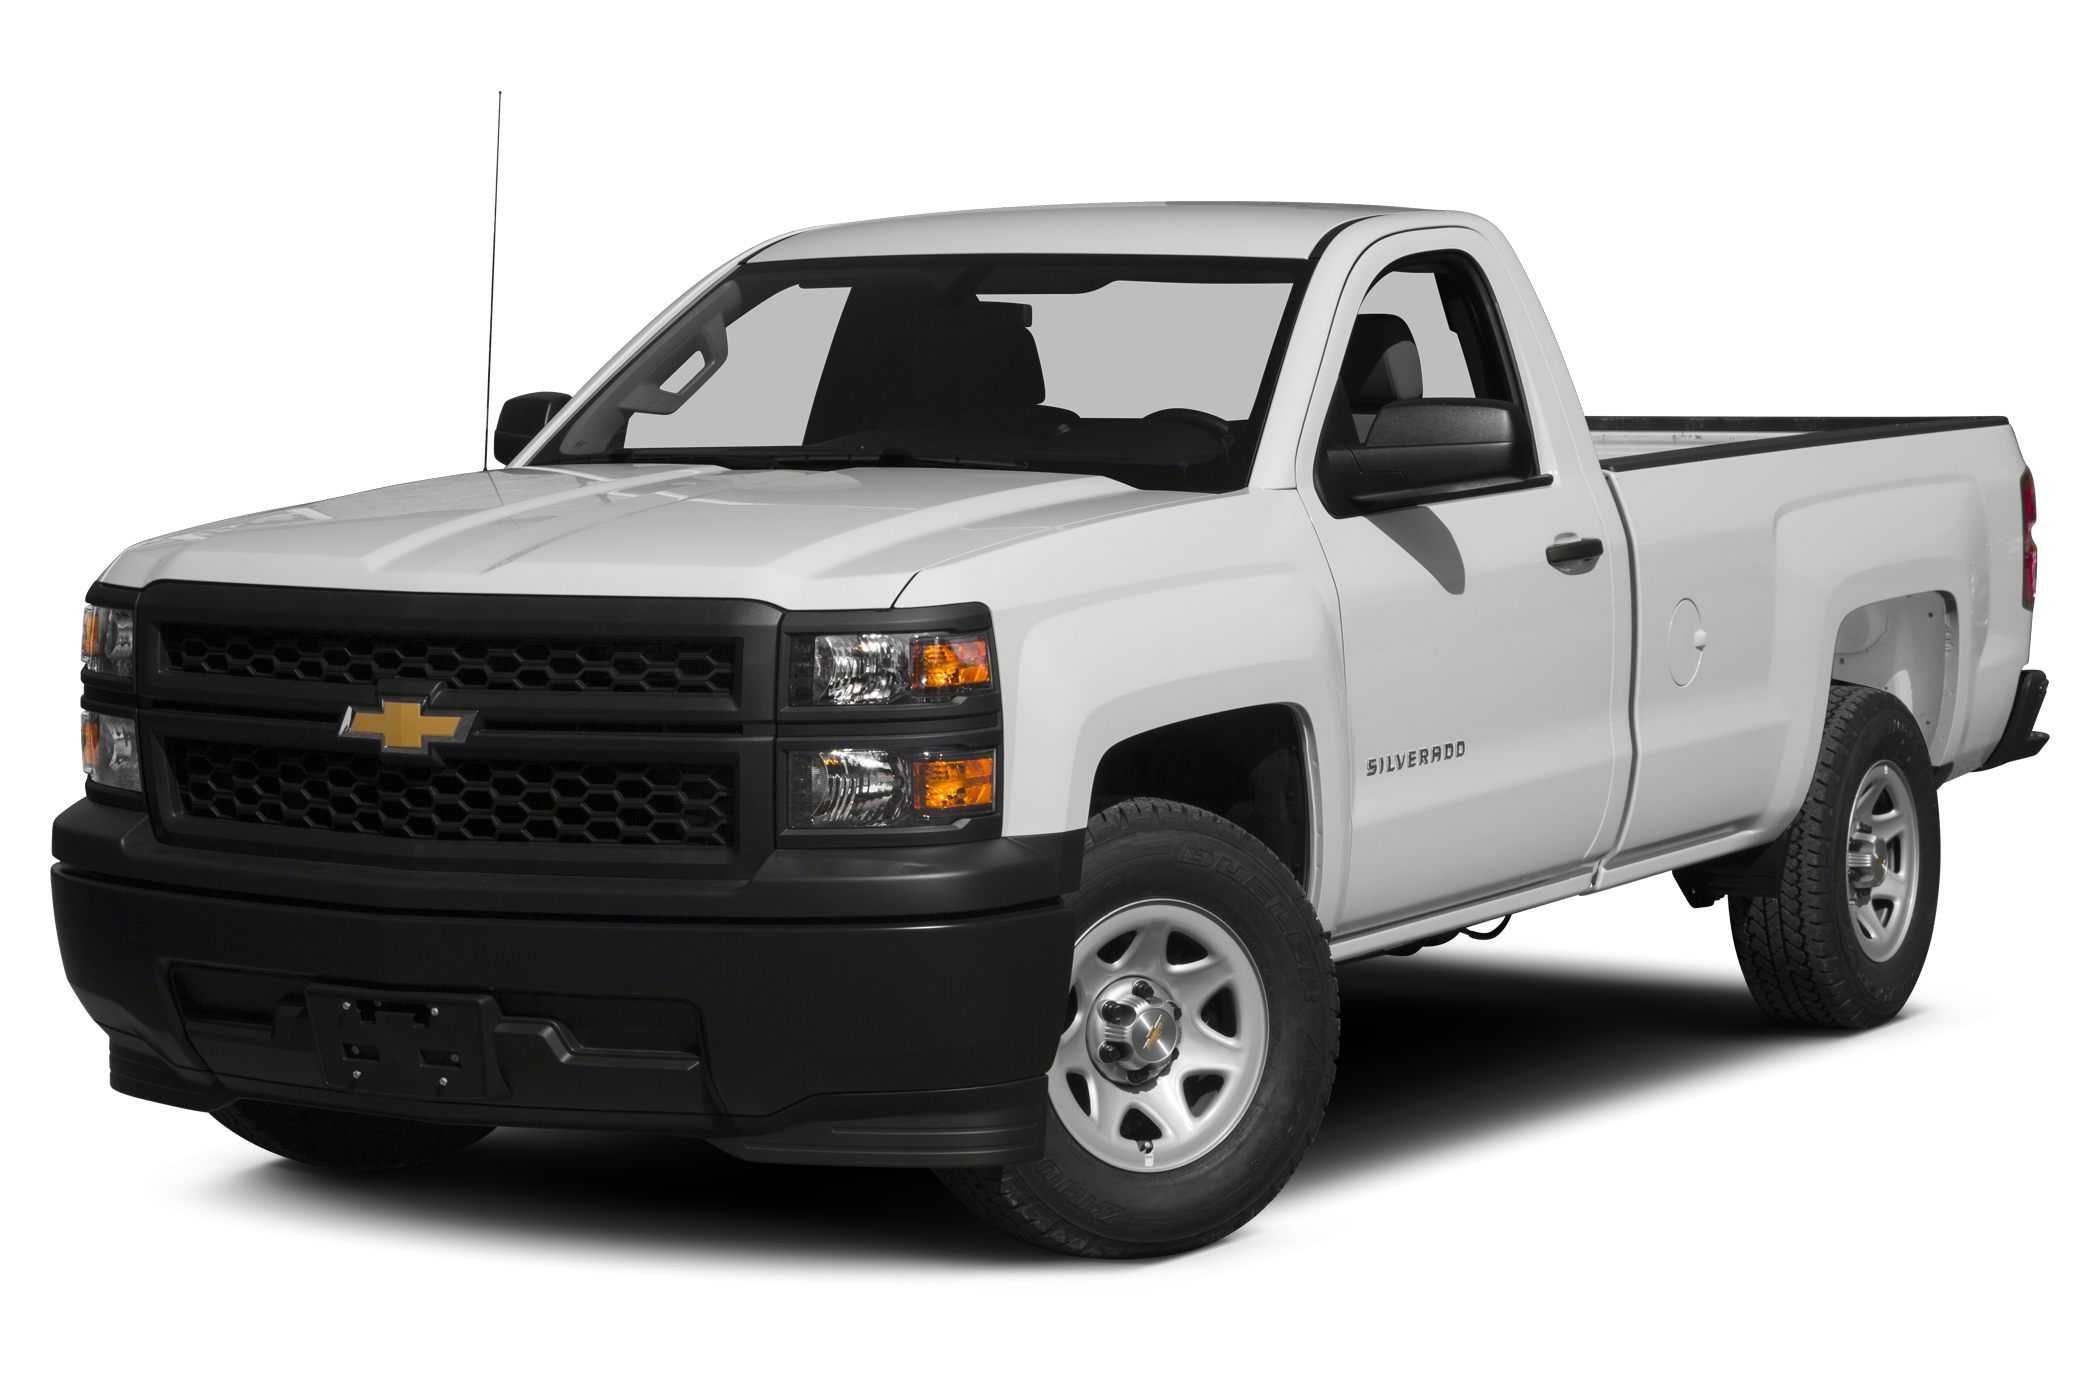 2015 Chevrolet Silverado 1500 1LT Extended Cab Pickup for sale in Fargo for $40,620 with 6 miles.